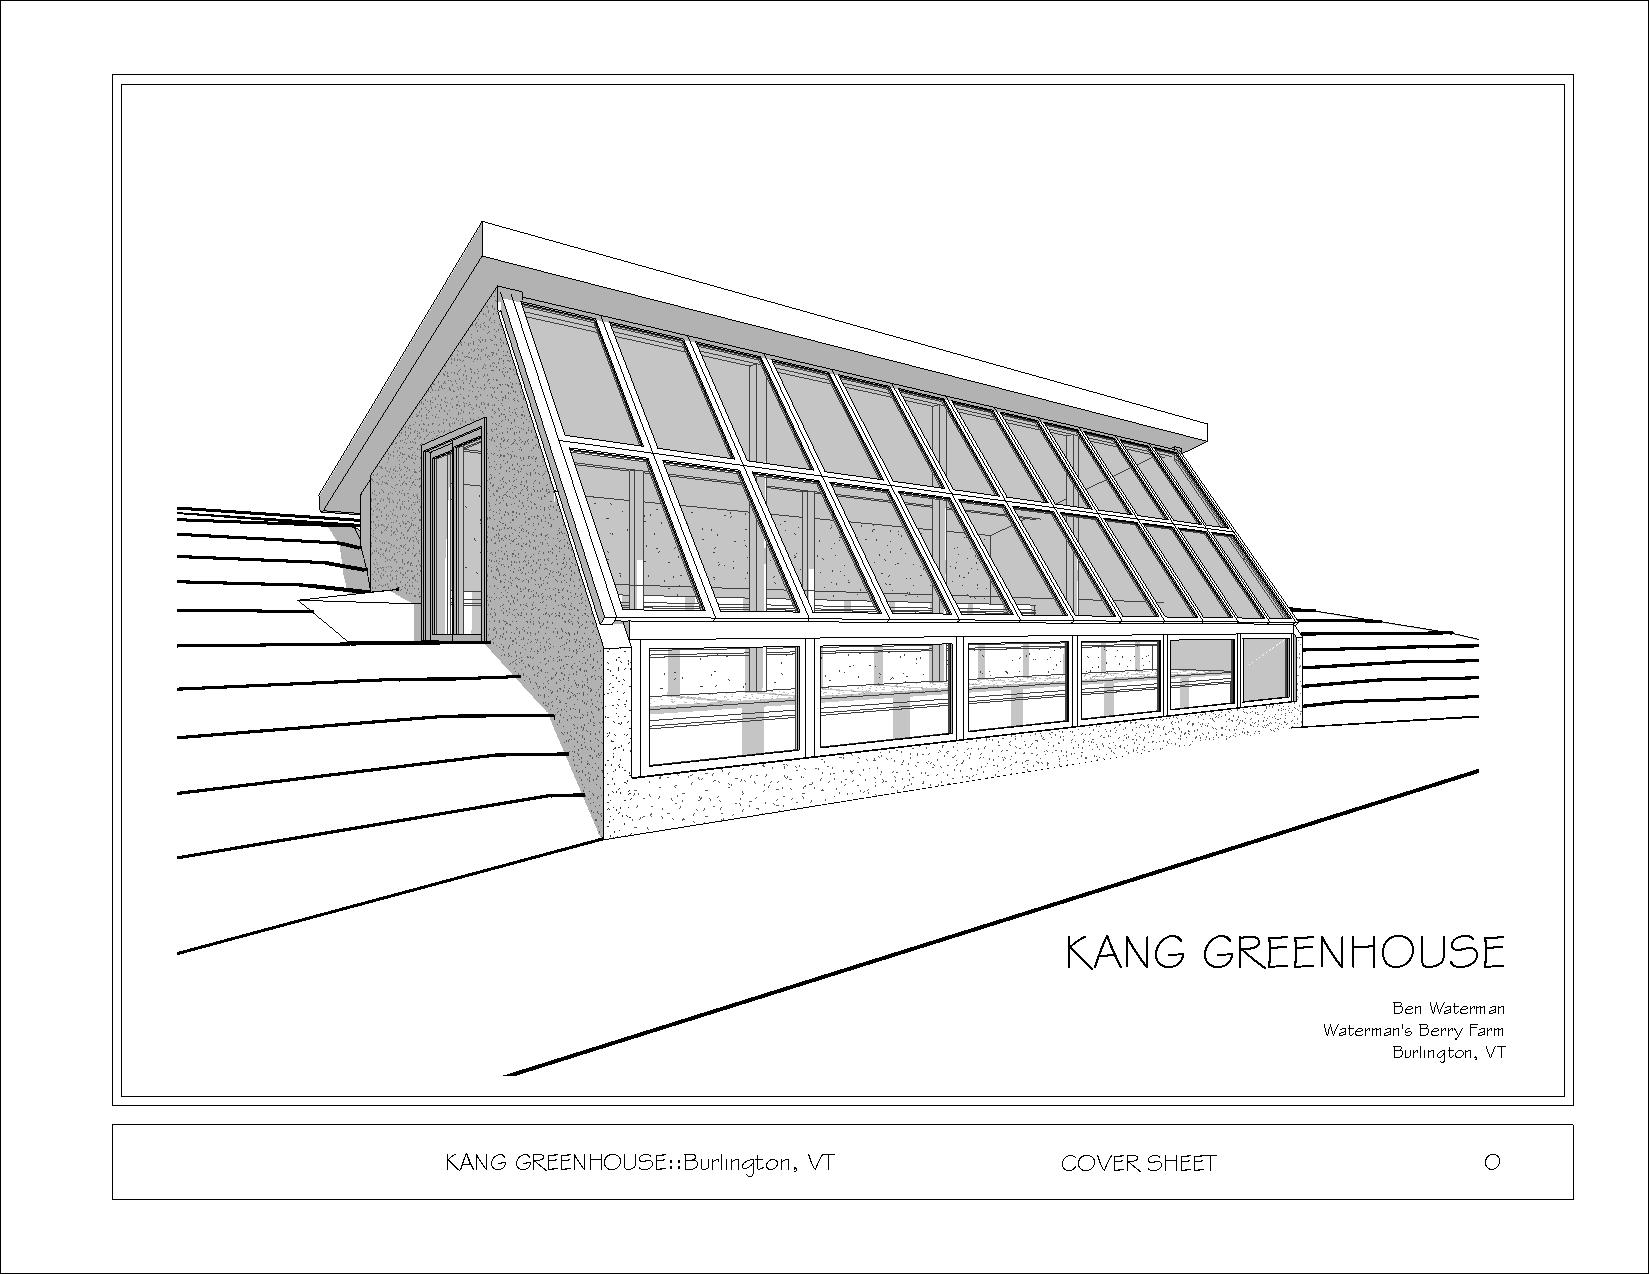 Kang Greenhouse - Sheet - 0 - COVER SHEET.jpg